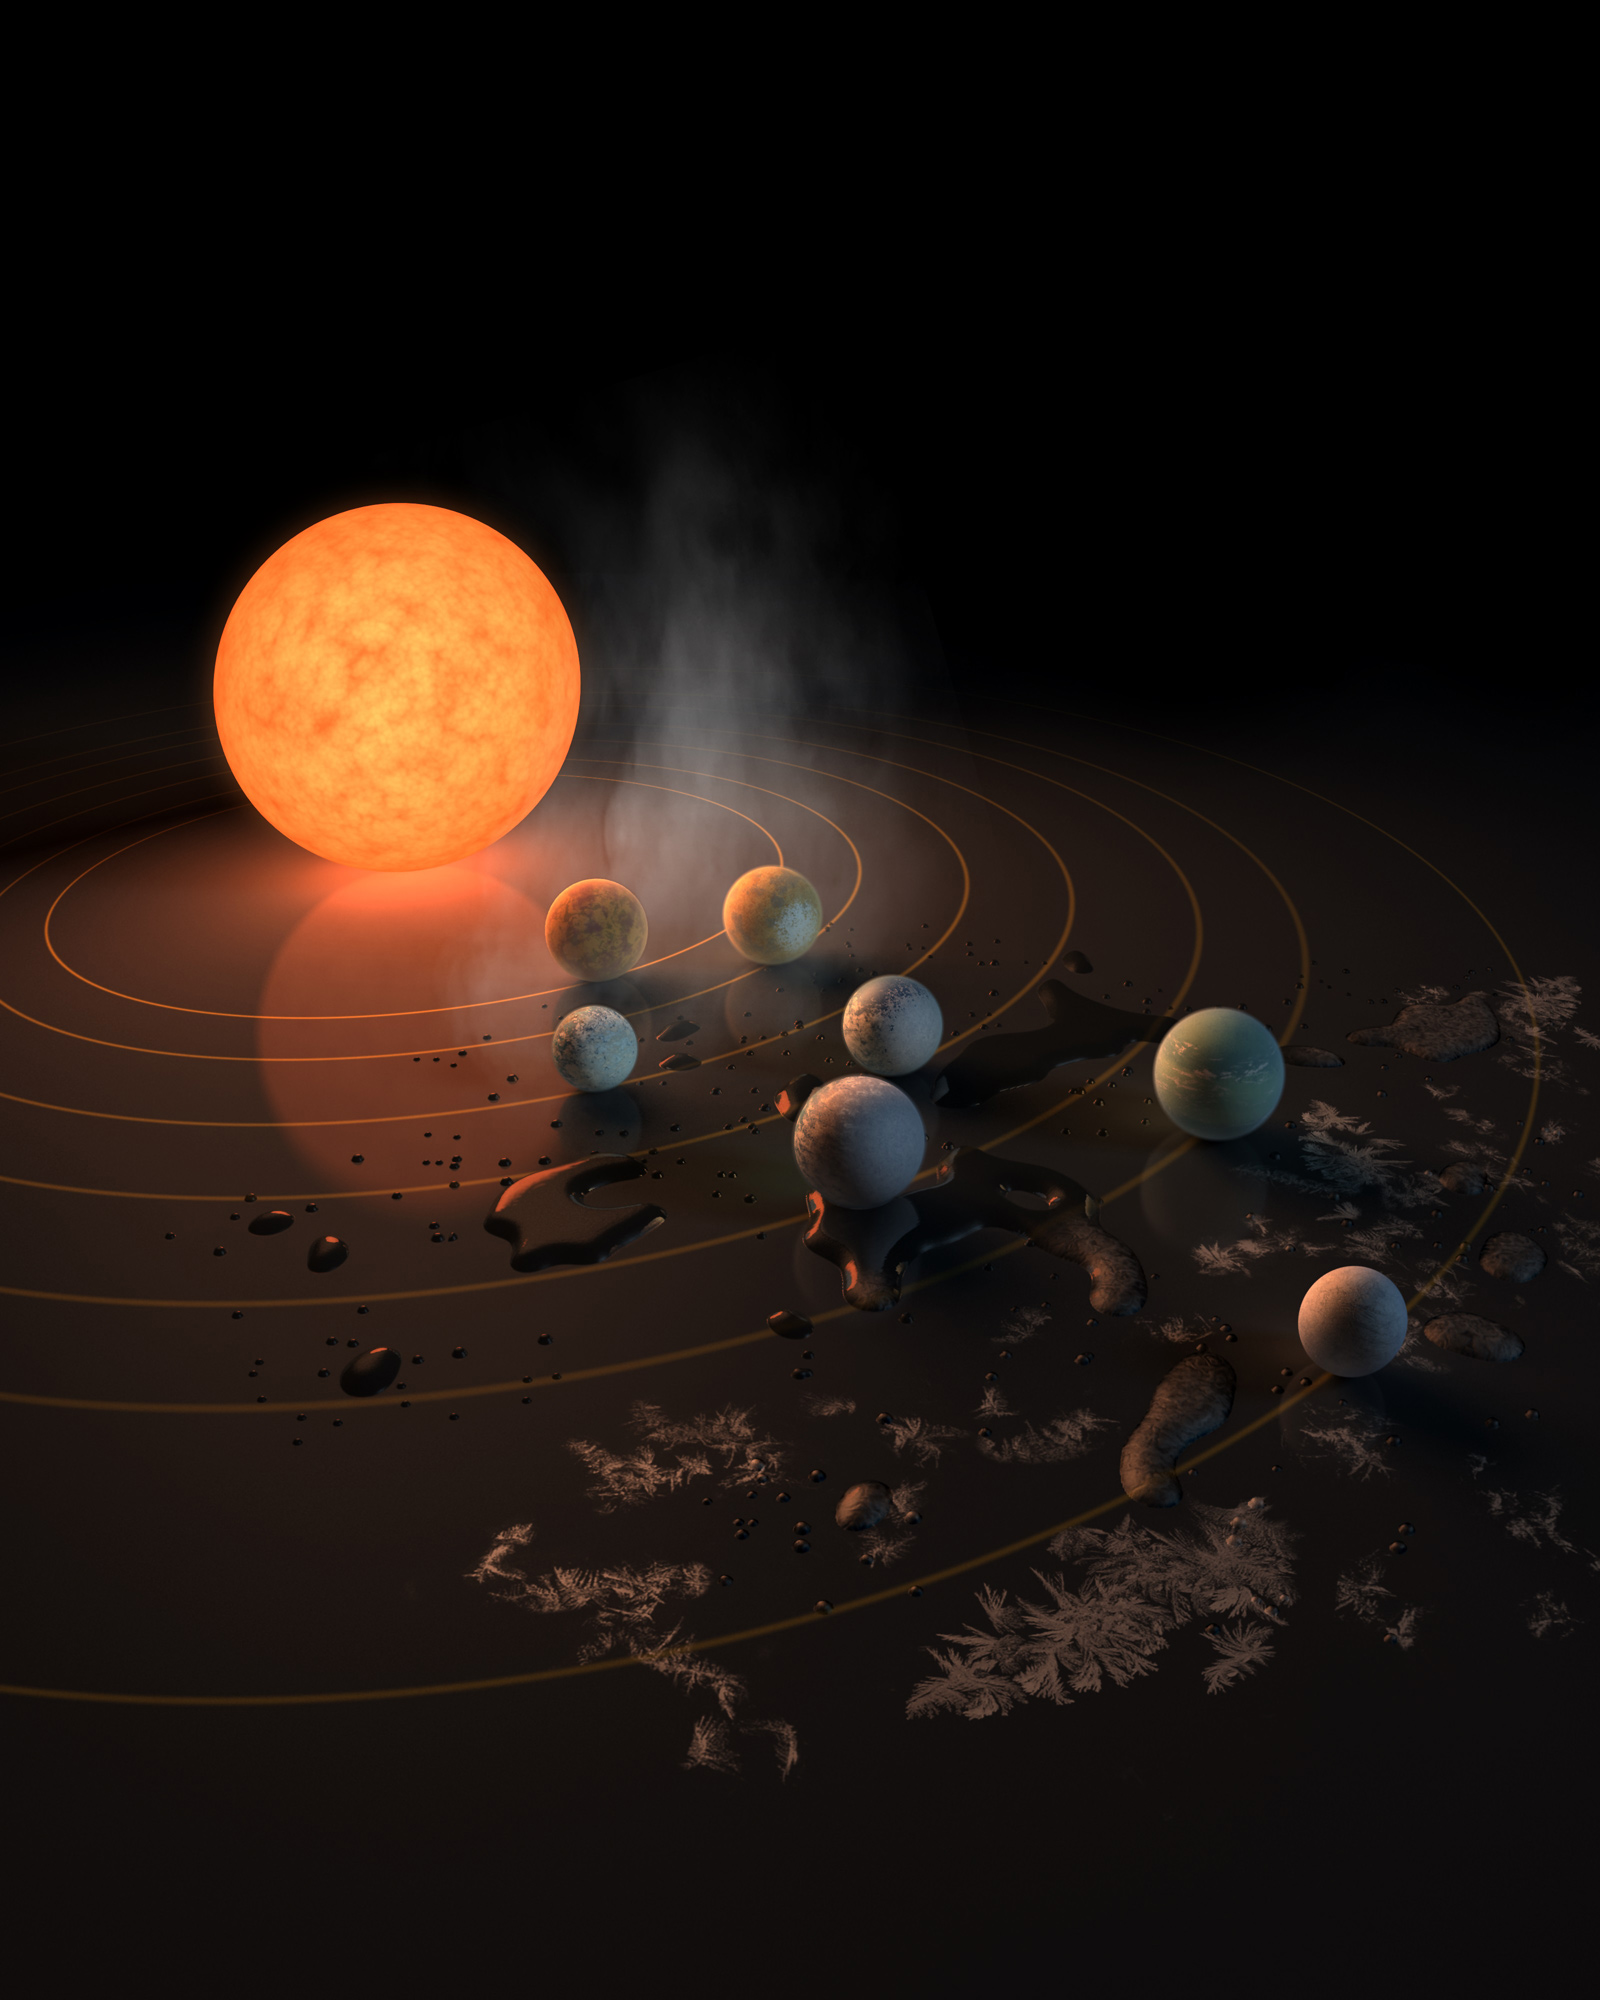 Exoplanet Tour: Meet the 7 Earth-Size Planets of TRAPPIST-1